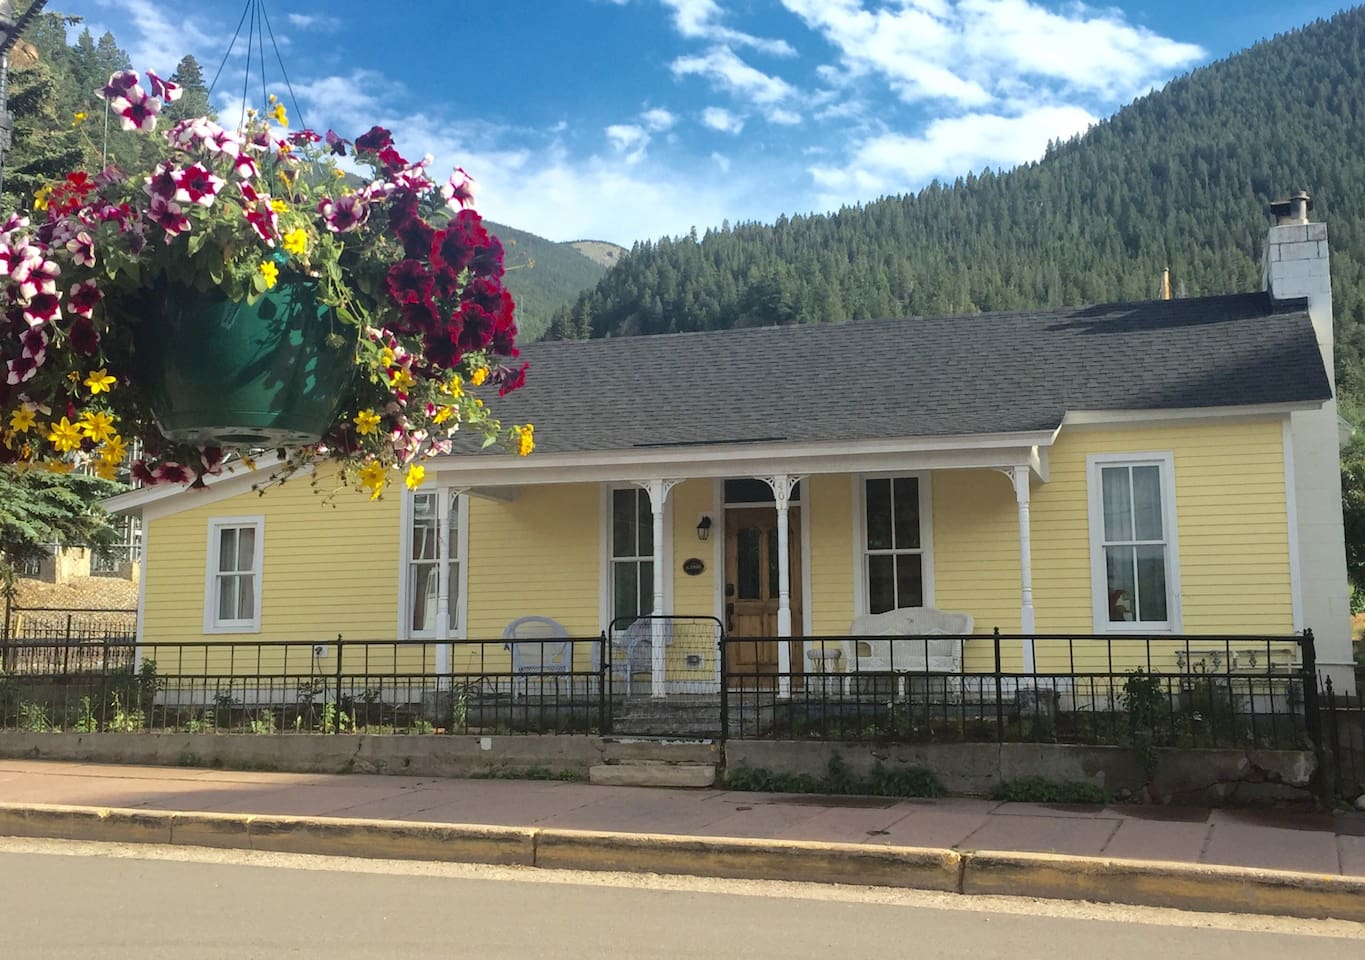 Remodeled 1865 home in Georgetown Colorado. Located in downtown at the end of the main street, 6th Street.  Four bedrooms, two full bathrooms (showers), seven beds. Comfortable for 4-10 persons. House looks small from the front but extends out to the back.